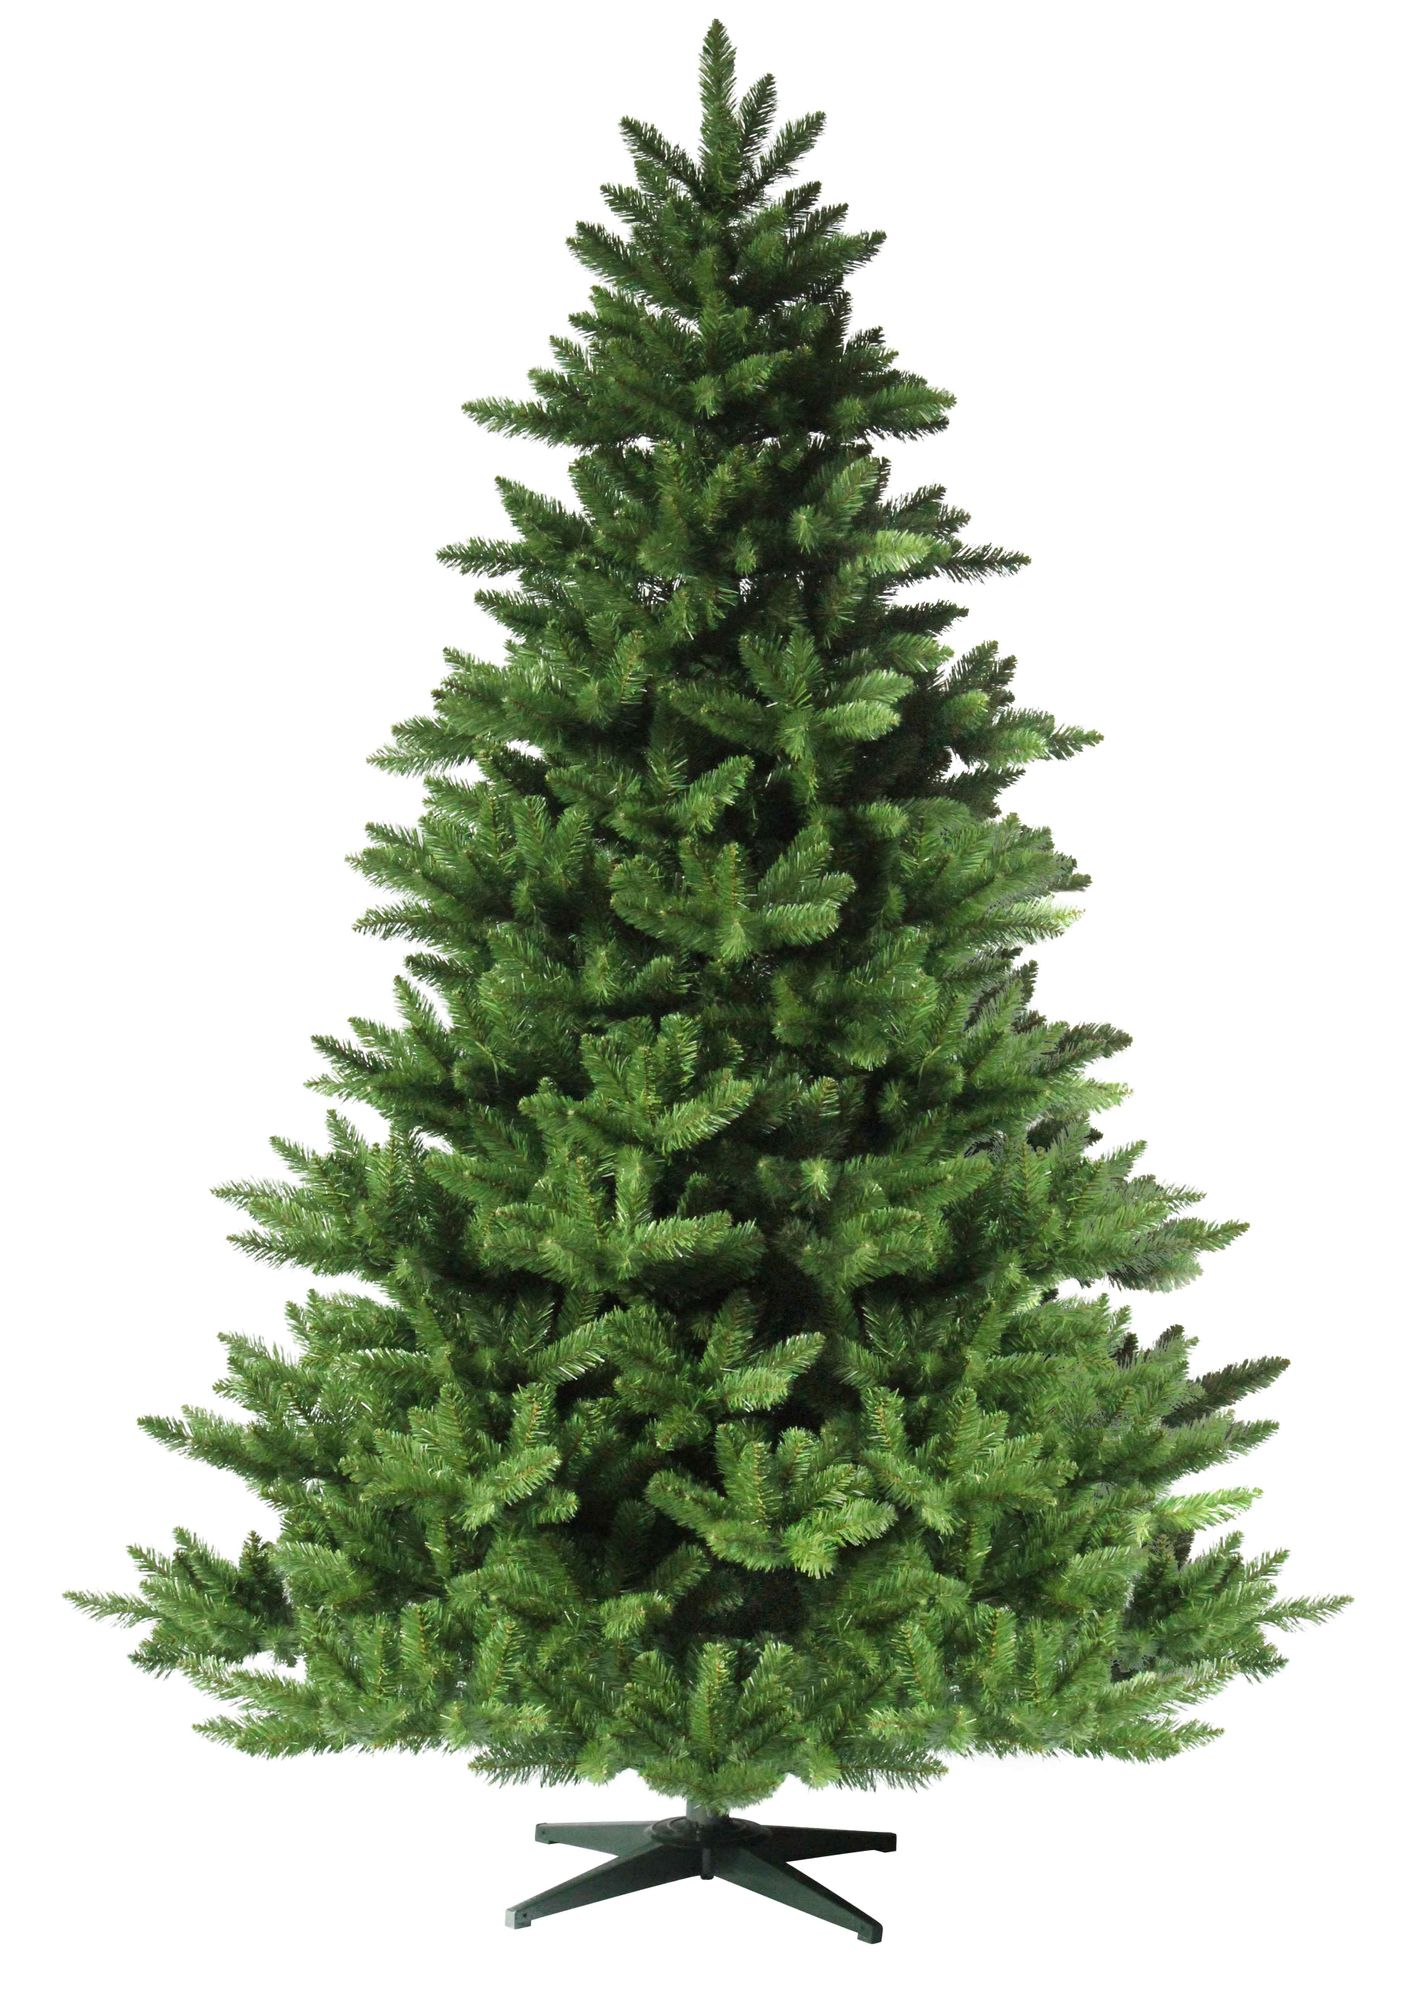 4ft Christmas Tree.Hxt 1101 120cm 4ft Artificial Christmas Tree